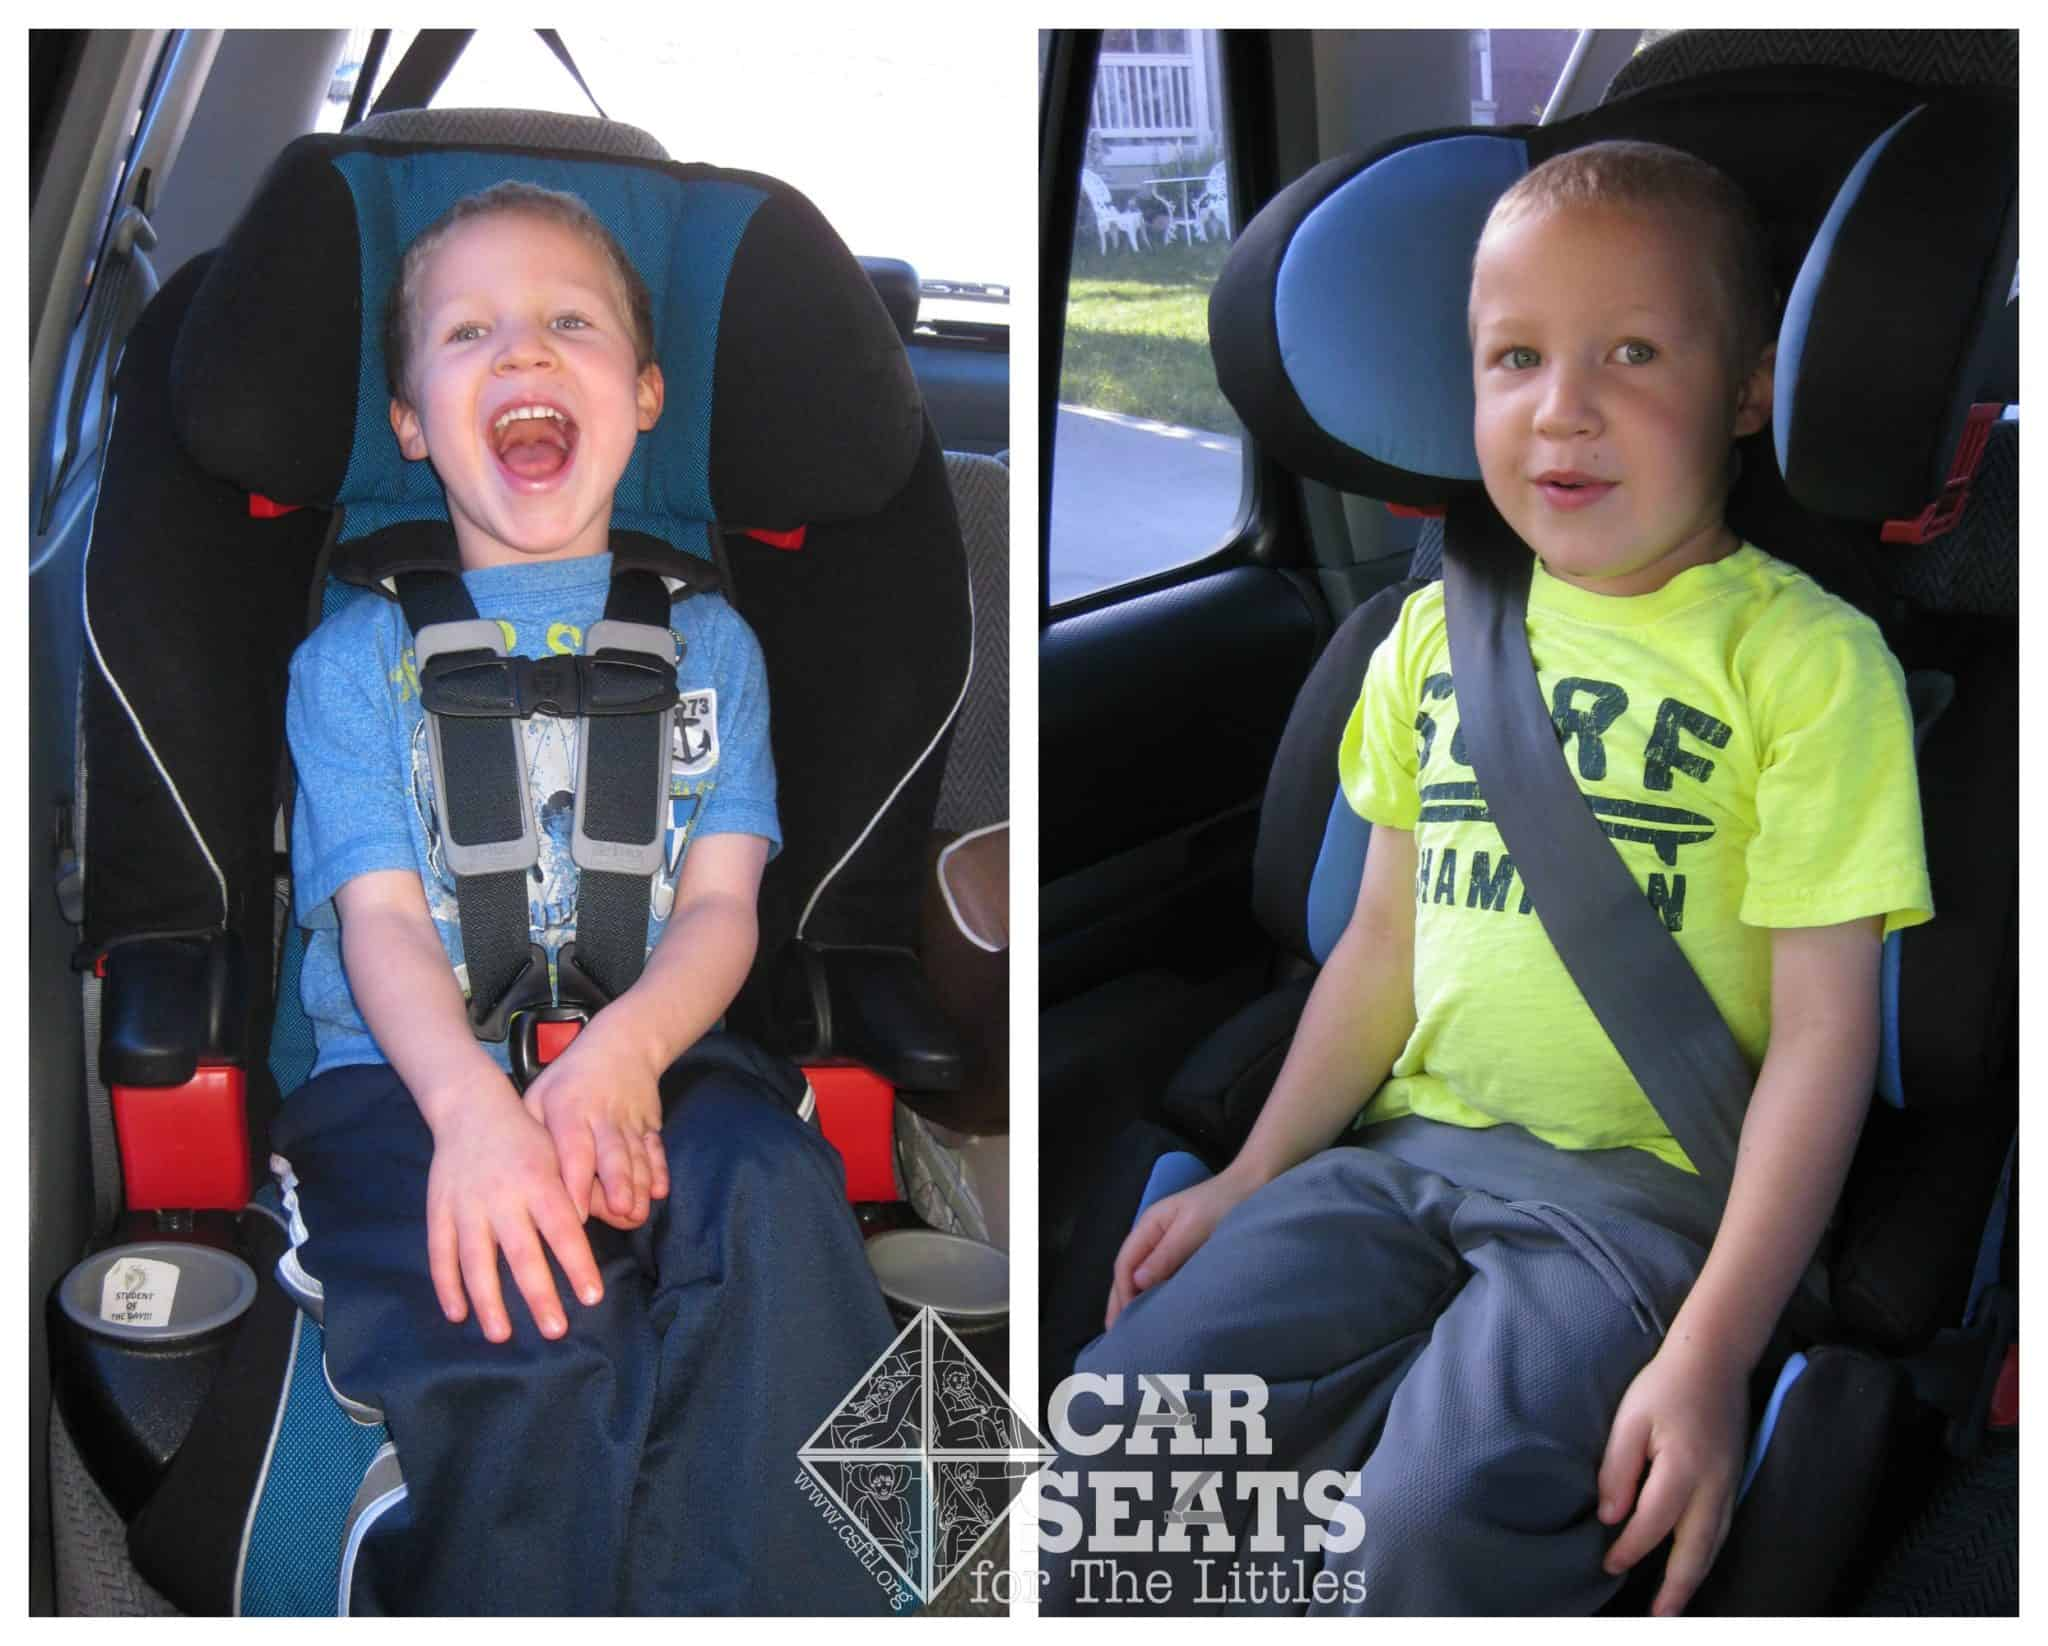 Harness or Booster when to make the switch  Car Seats